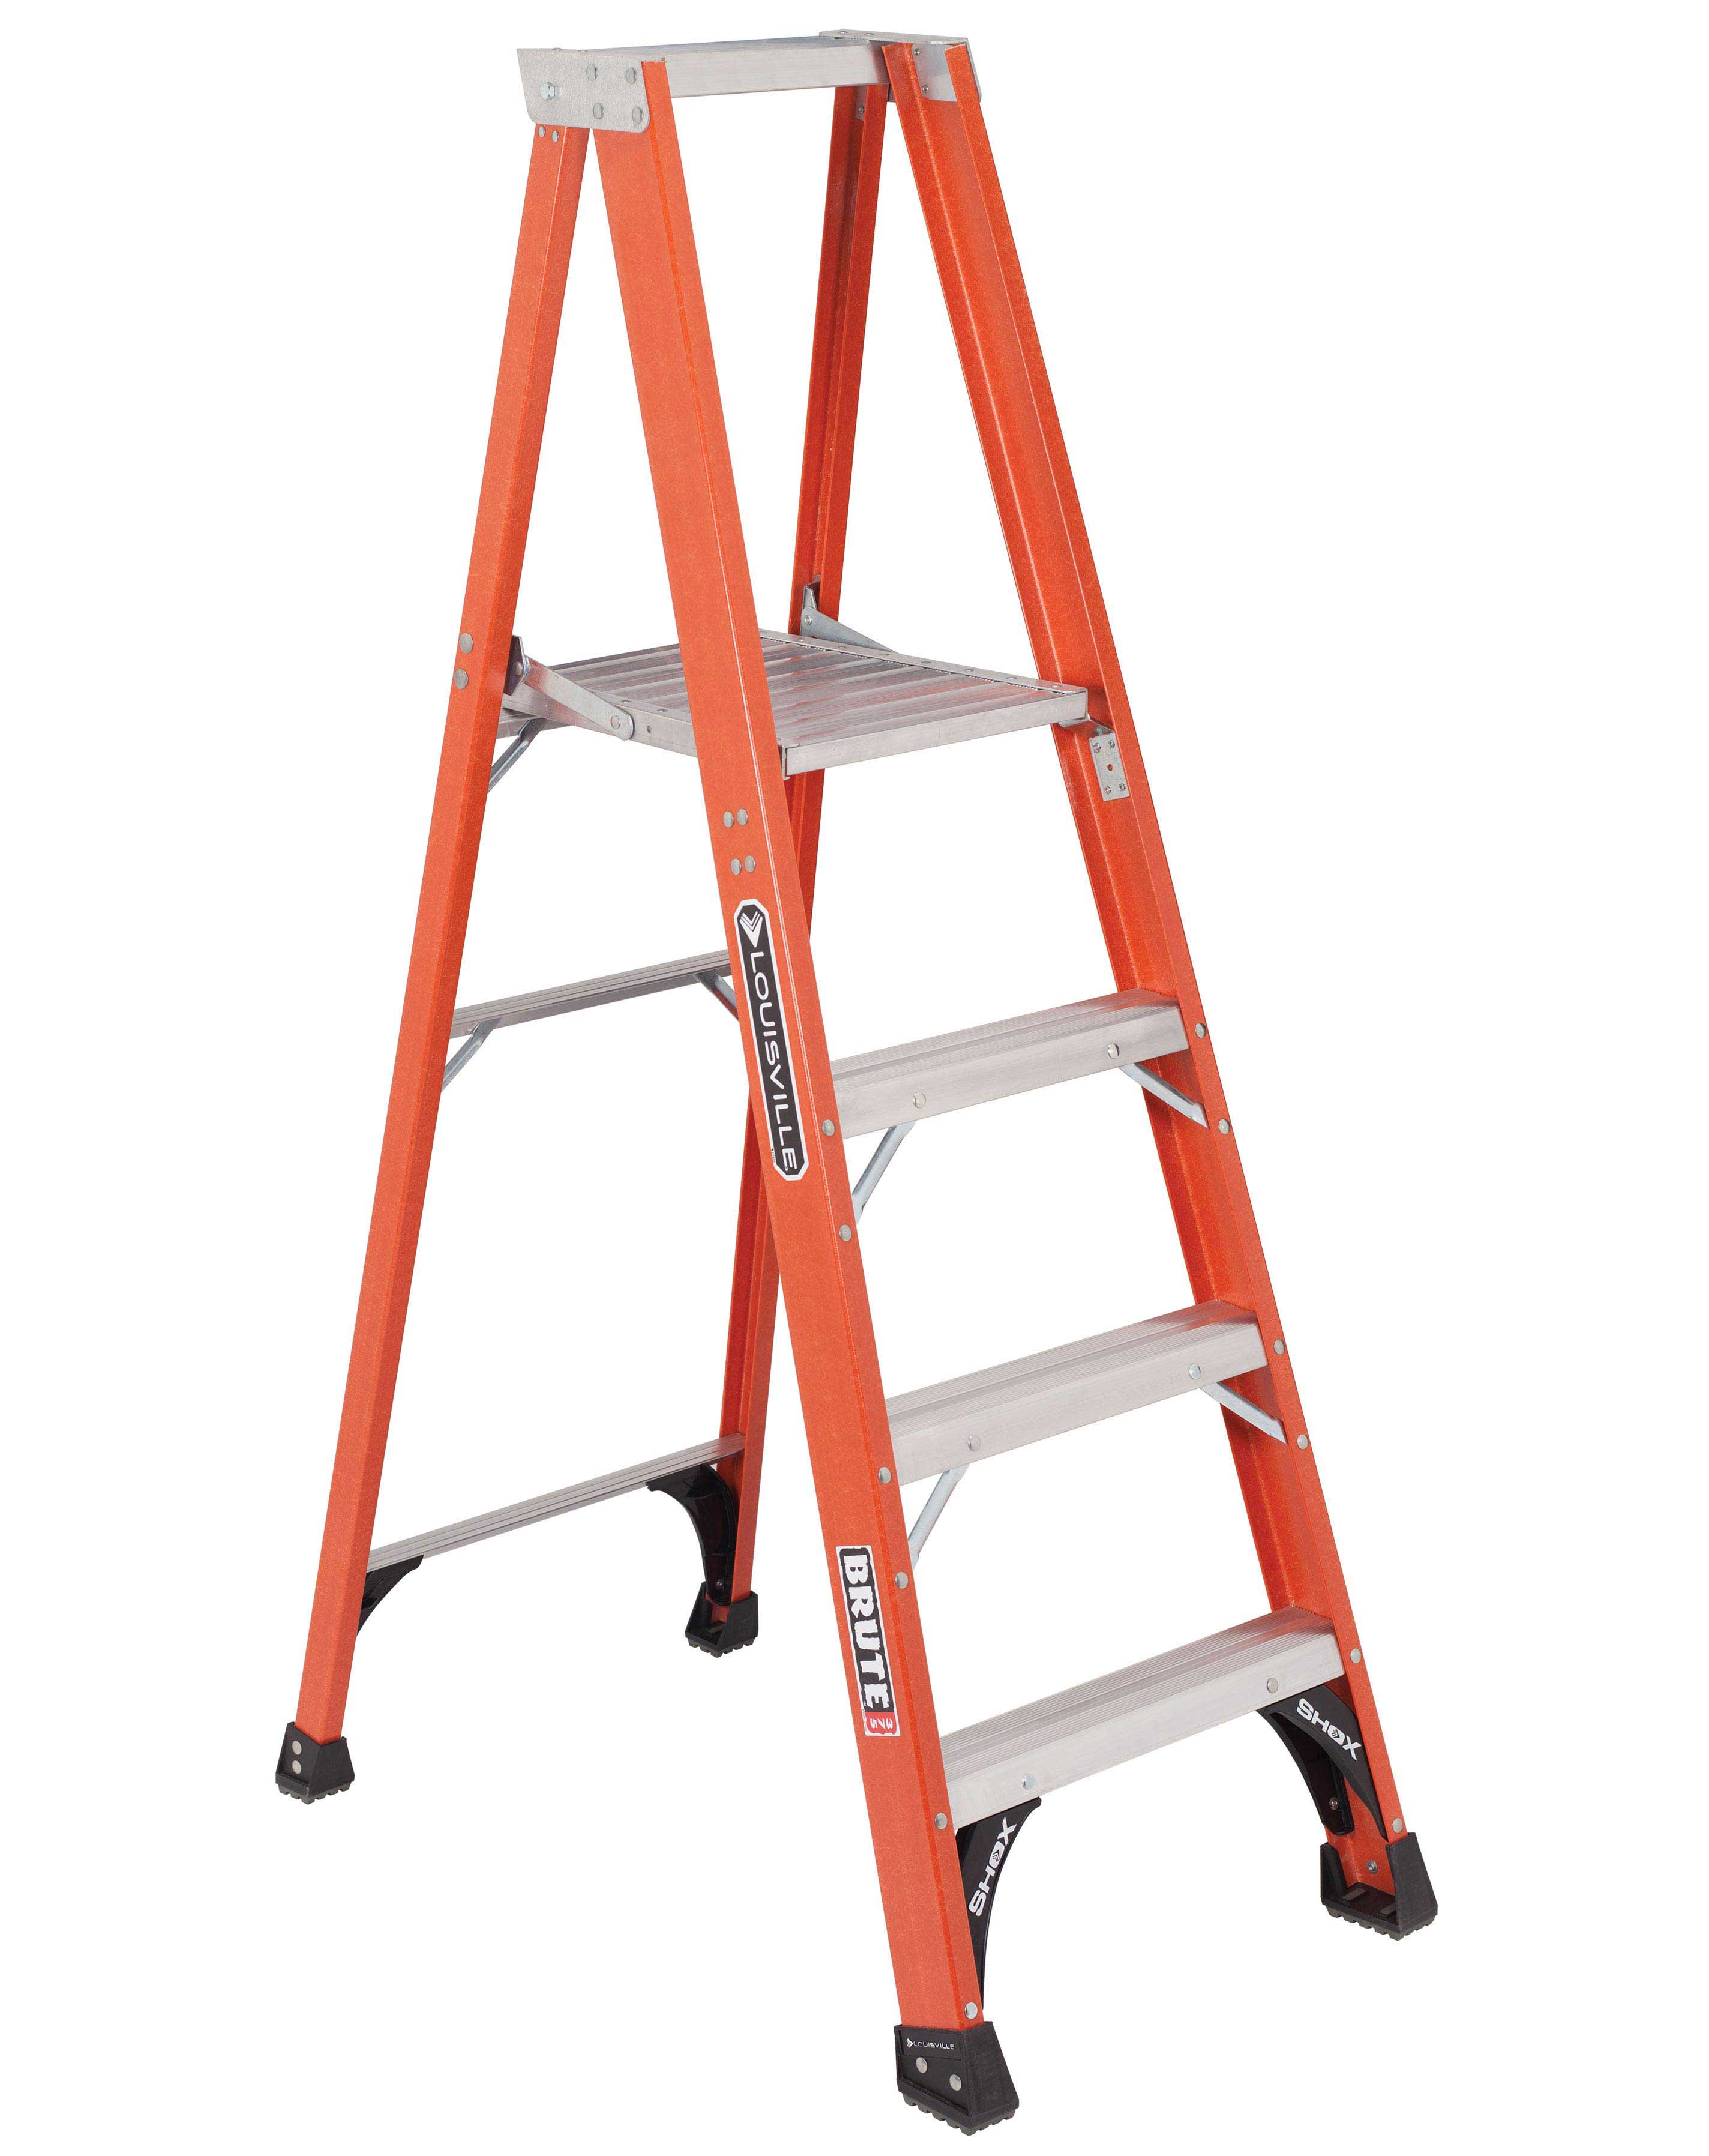 L-VIL FP1404HD 4FT FBGL STEP LADDER